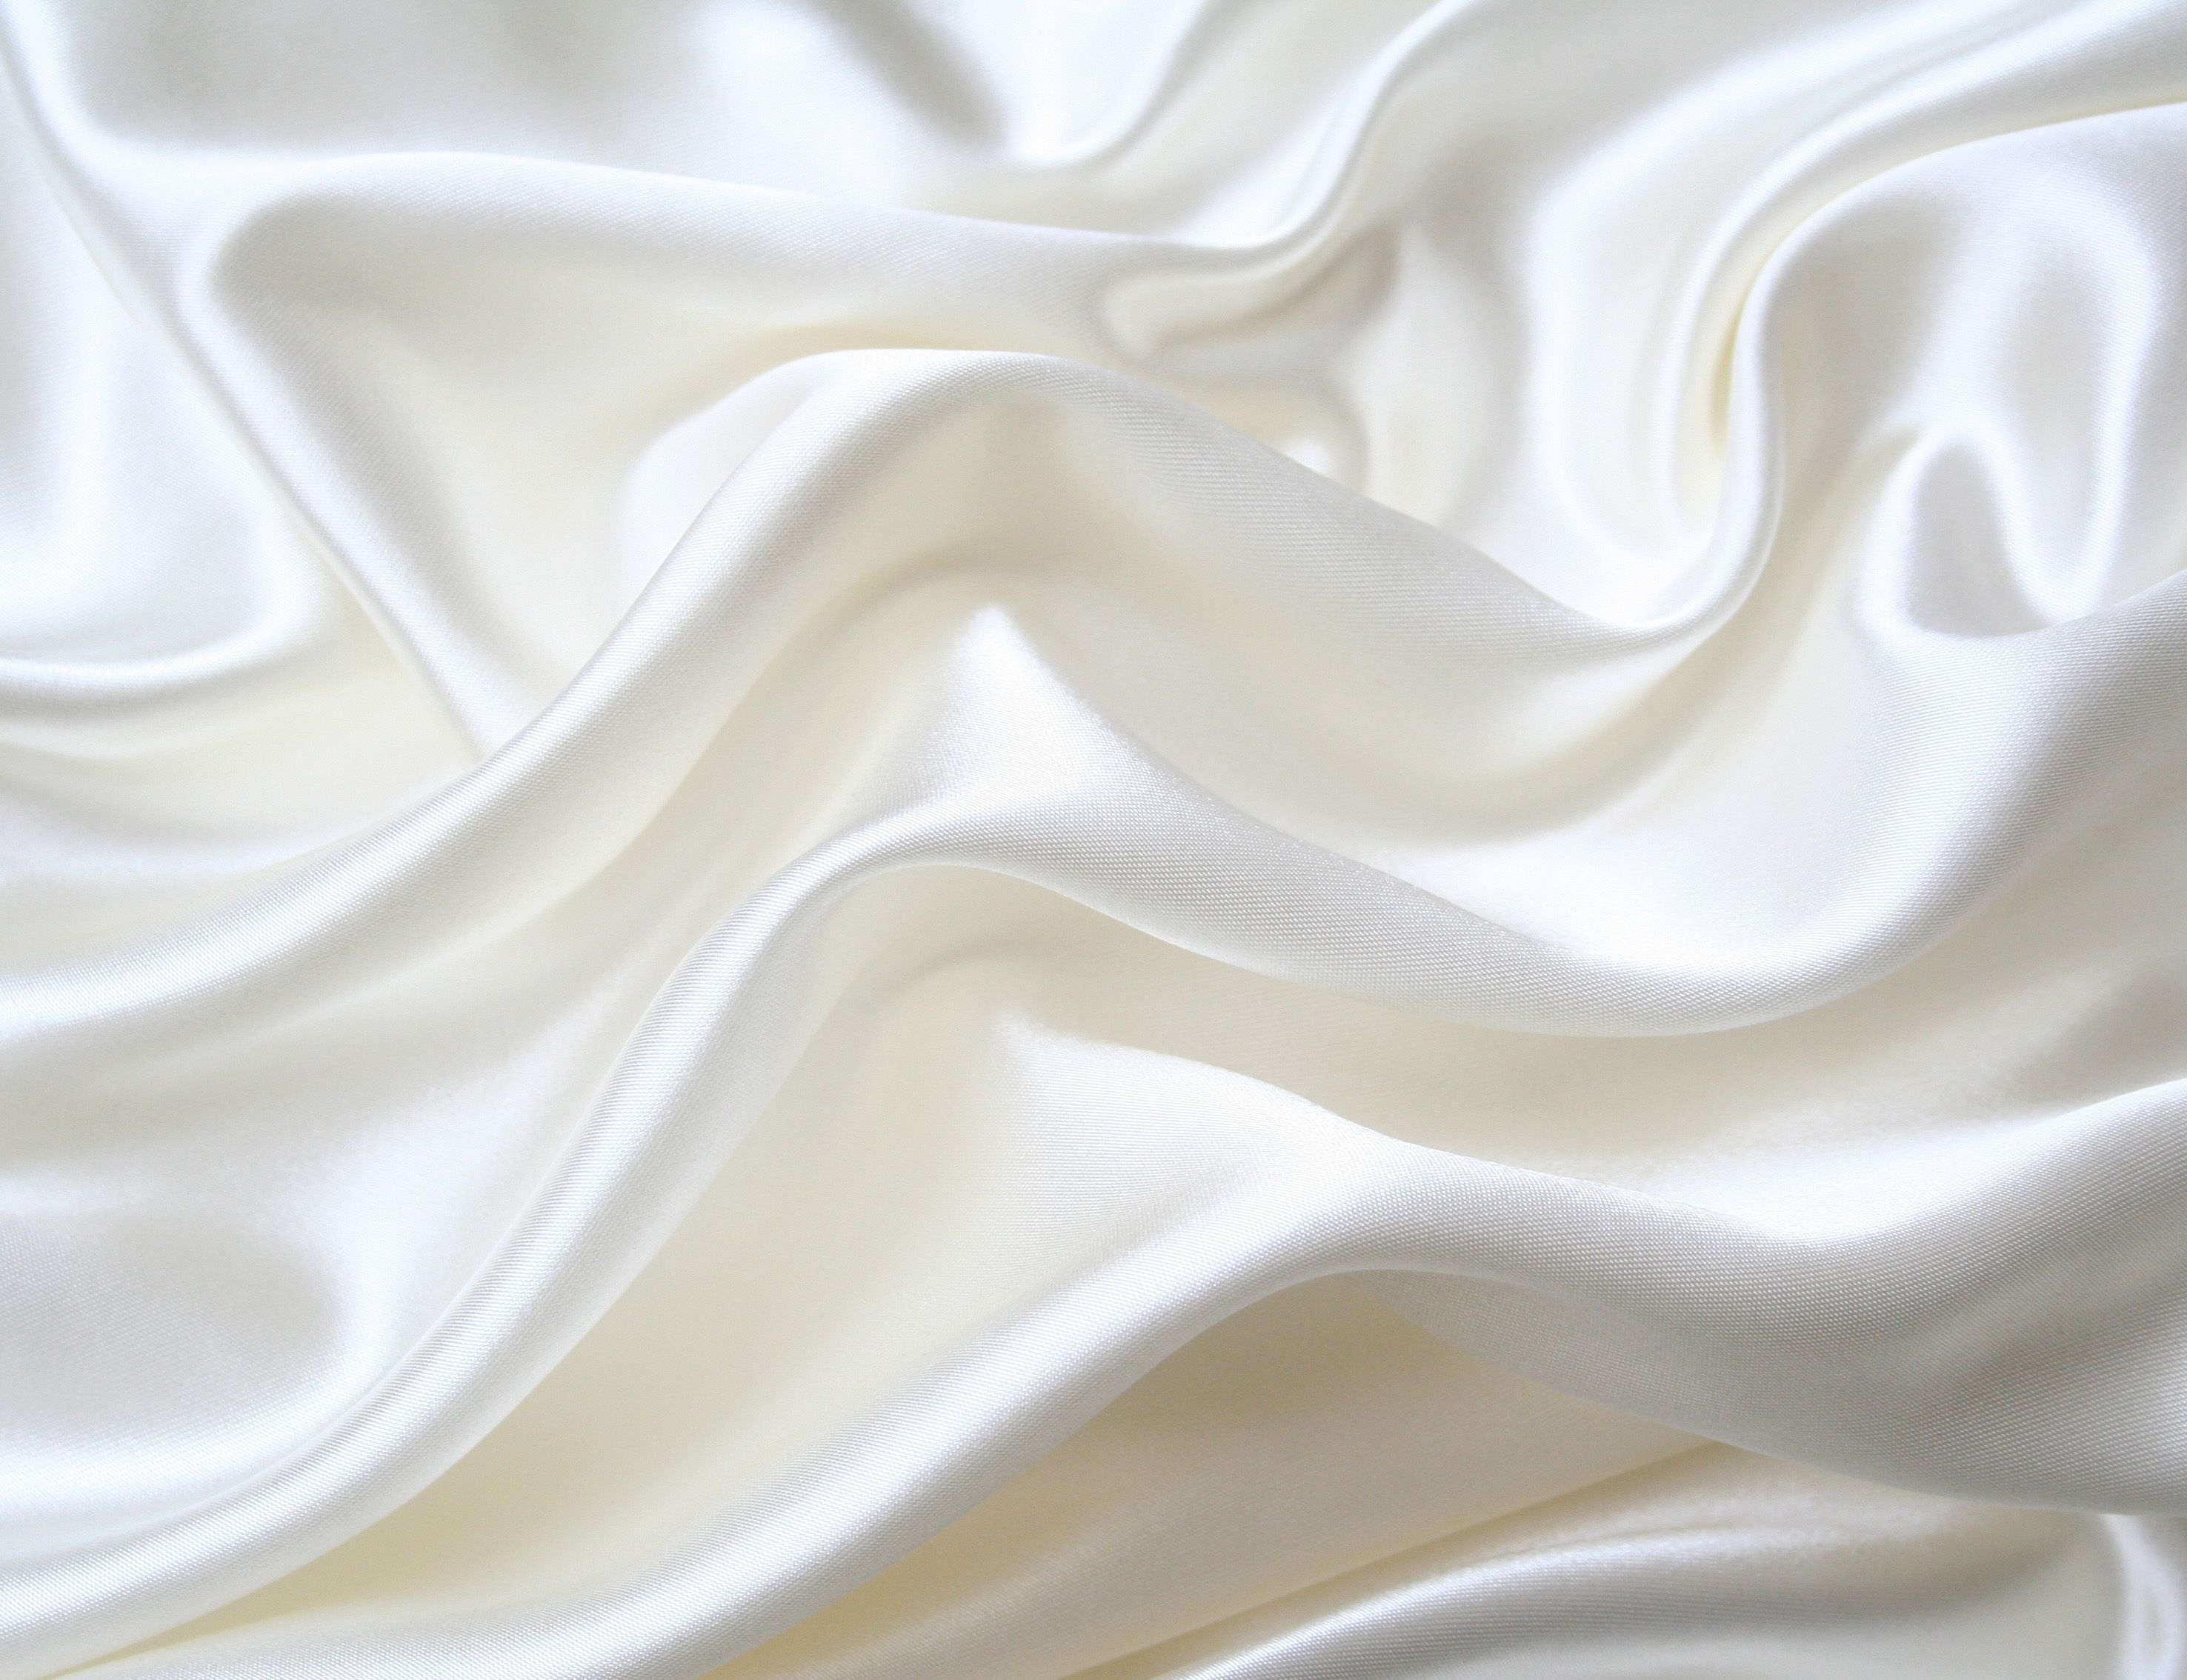 White bed sheet texture - Find This Pin And More On Texture